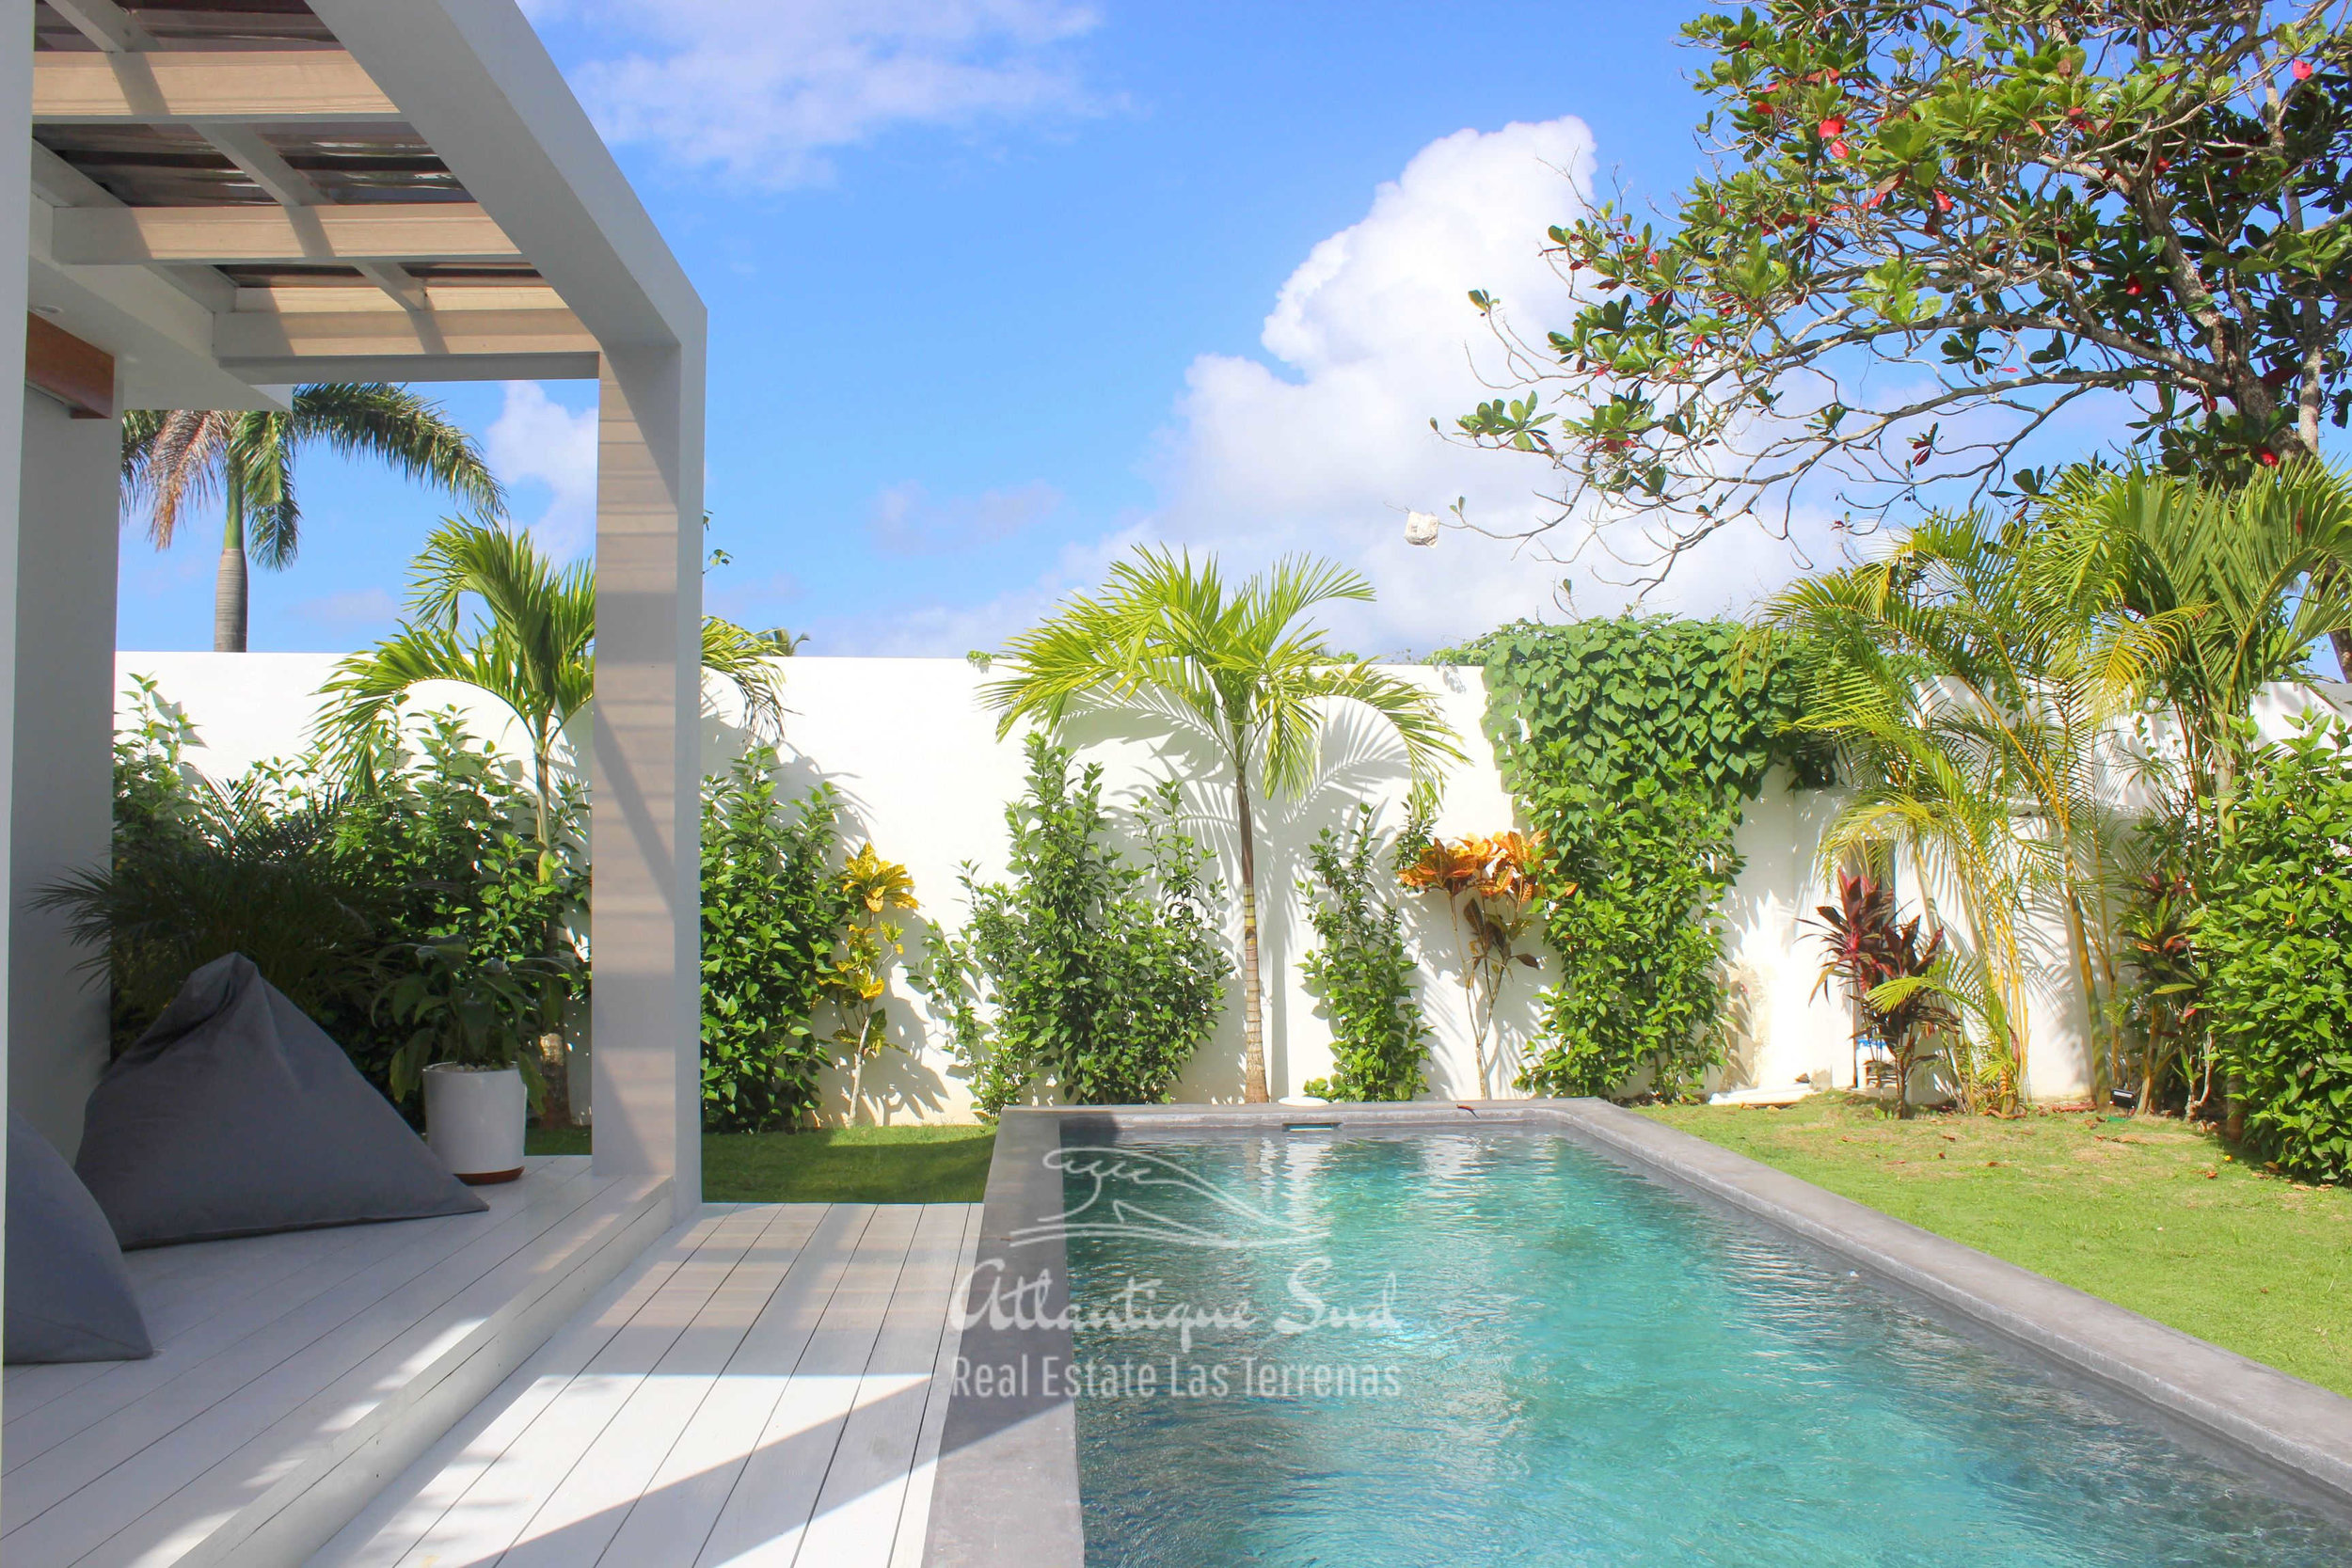 Villa for sale in Las Terrenas - Pran24.jpg